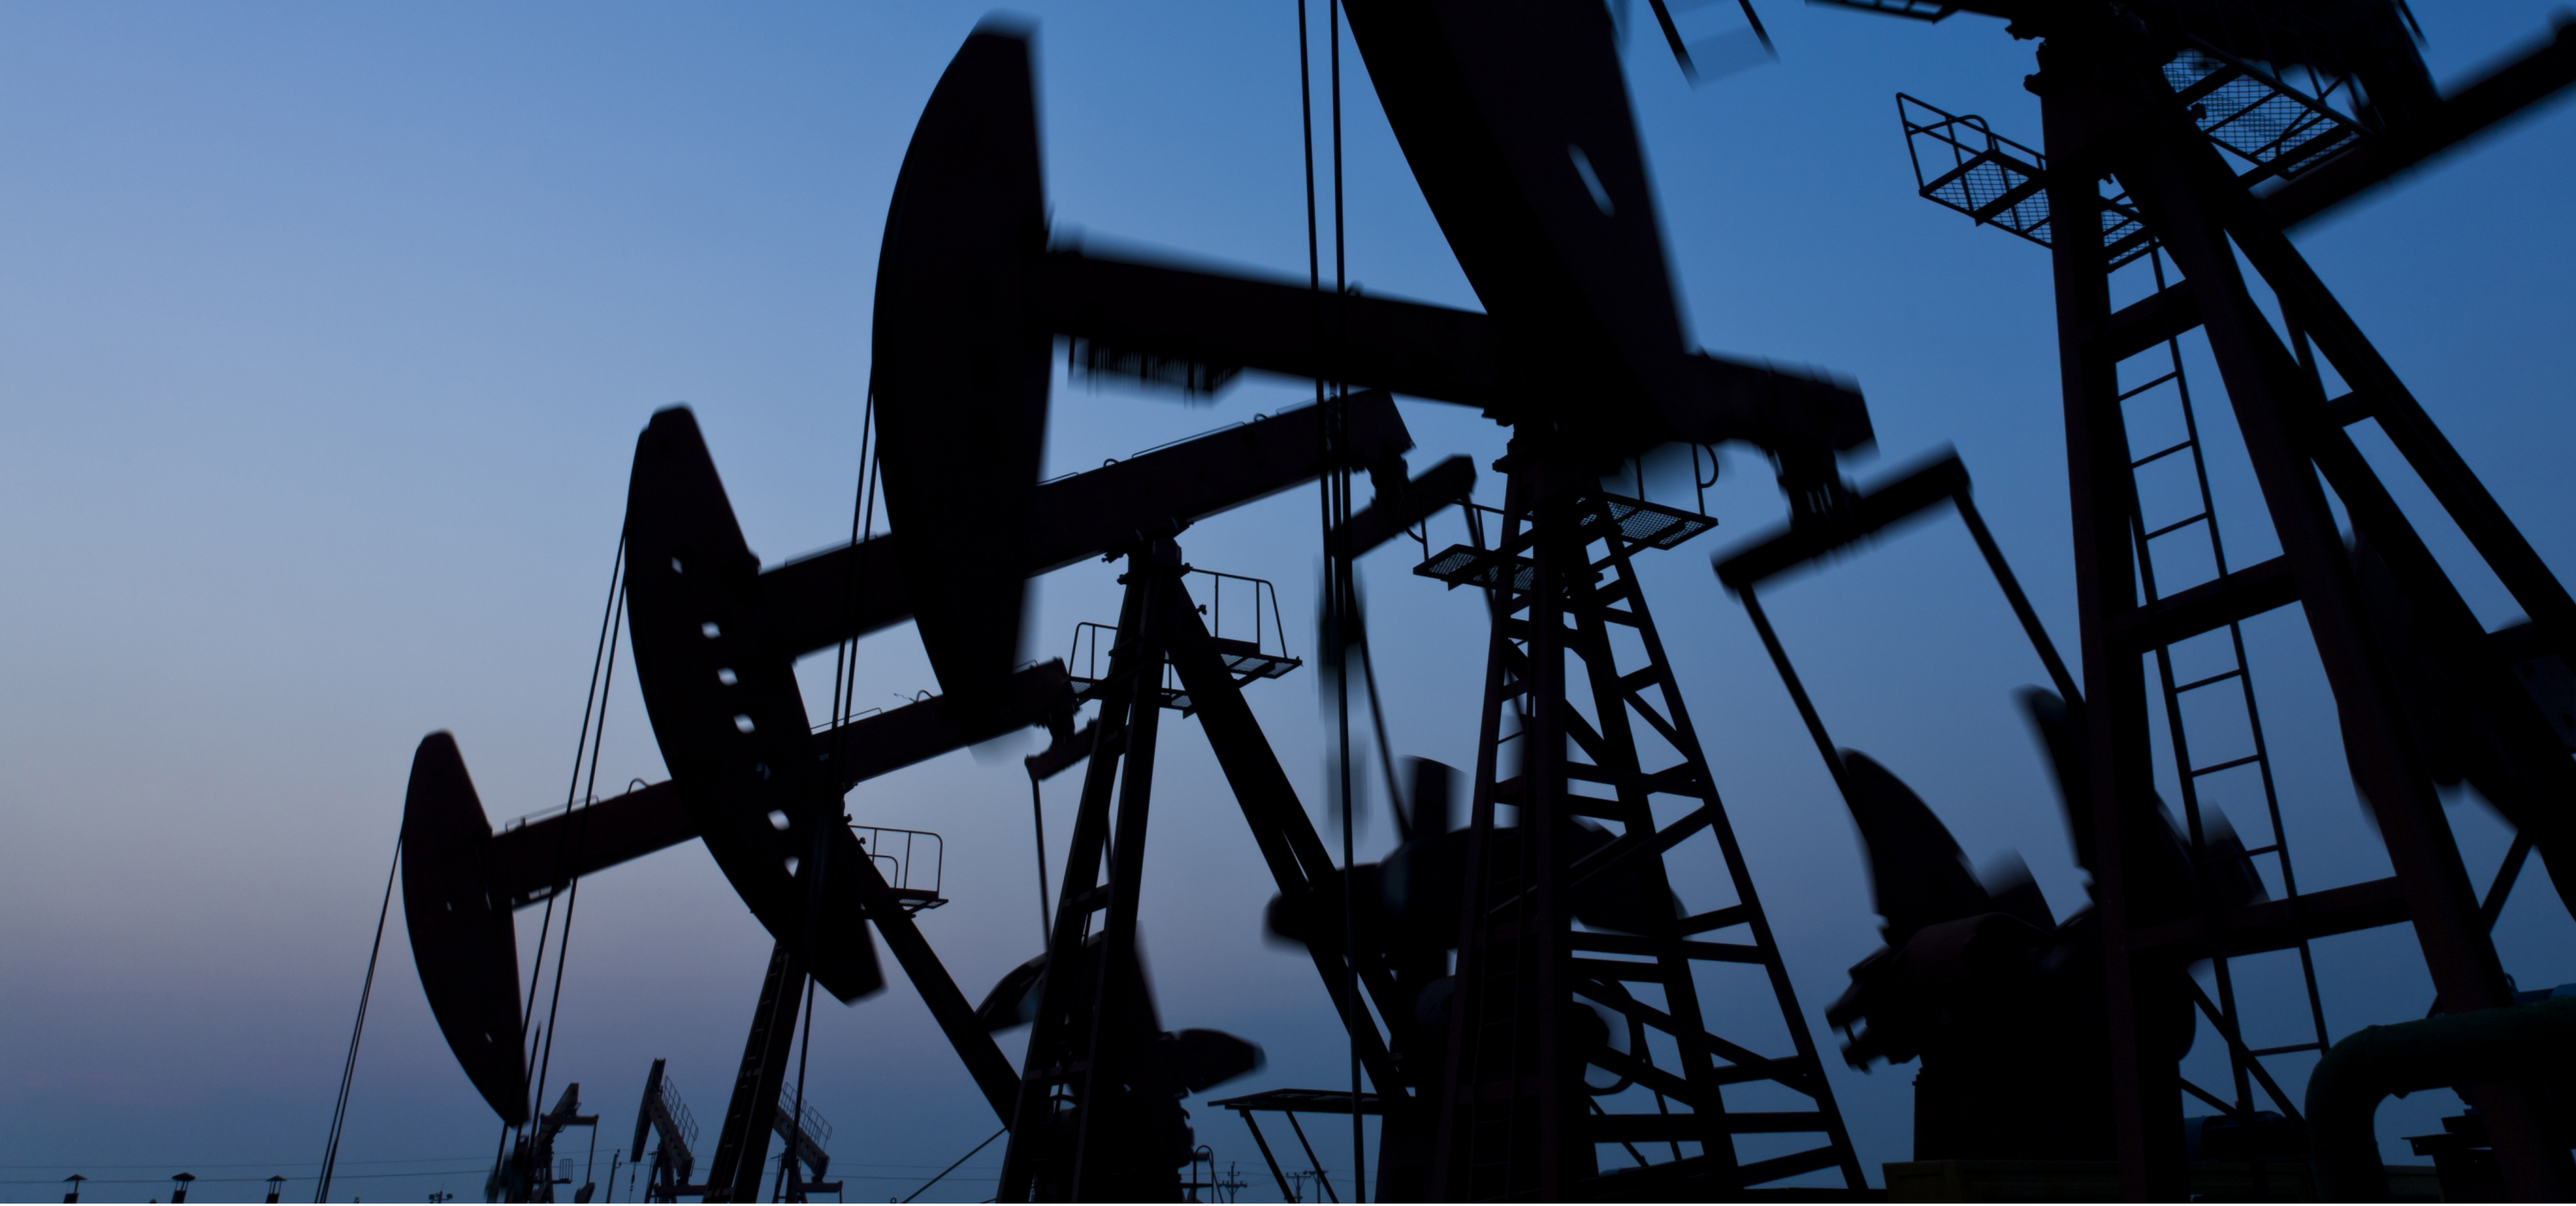 Silhouette of oil pump jack